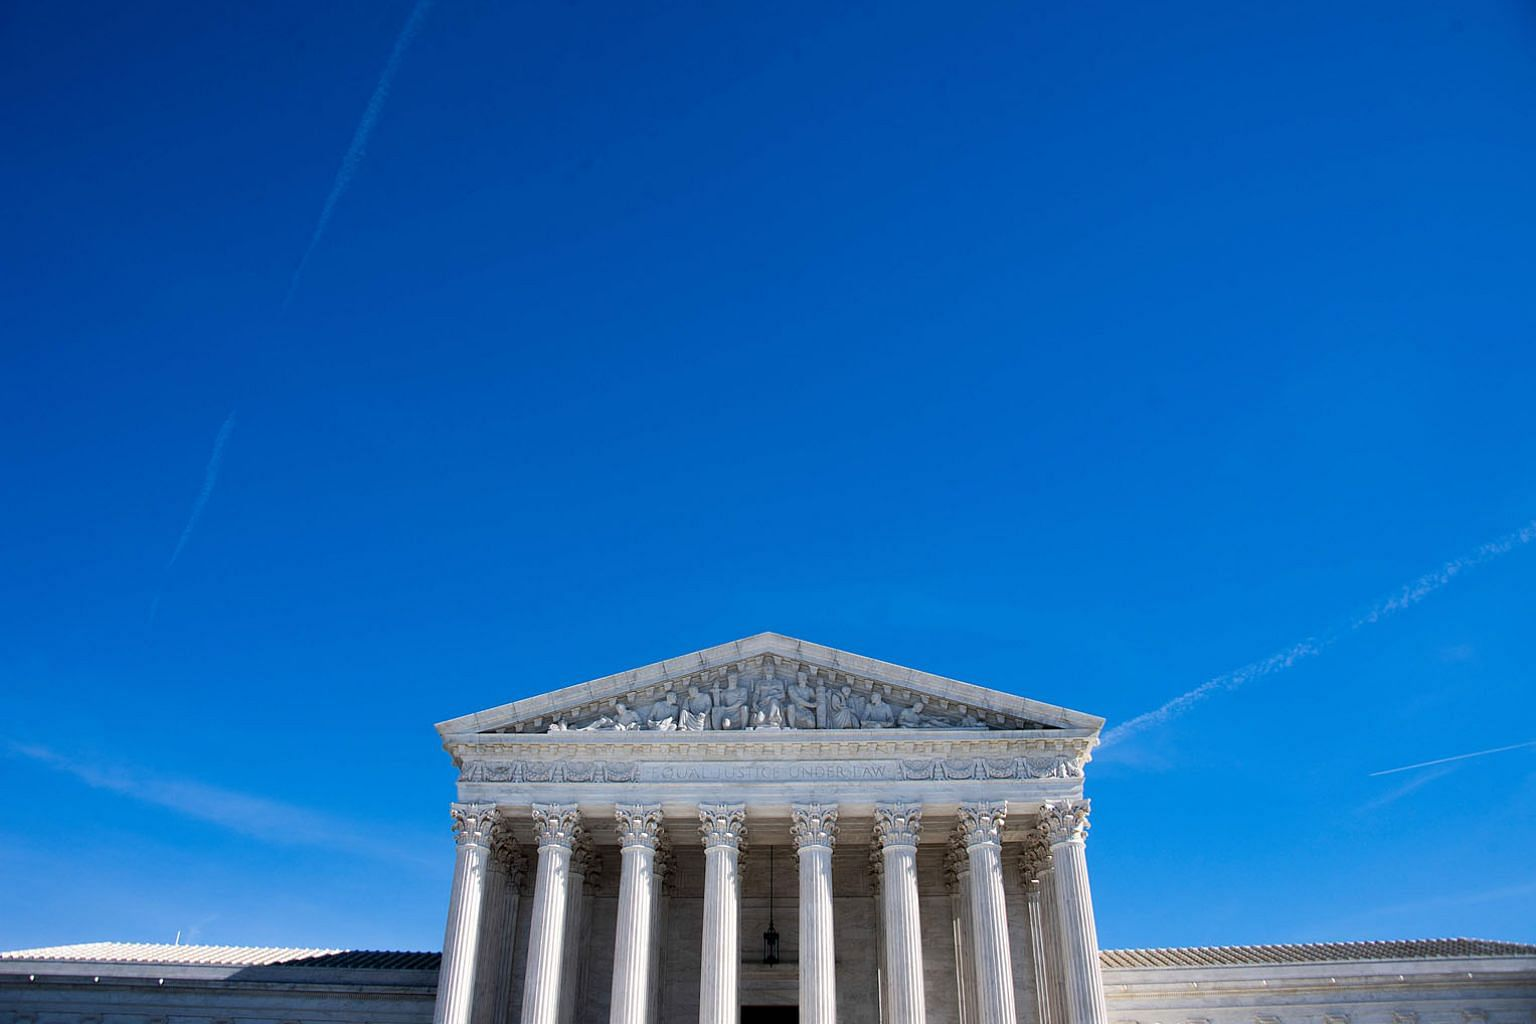 The US Supreme Court in Washington, DC. Under the common law system in the United States, Britain and several other countries, the validity of legal arguments depends heavily on precedent. Legal analytics companies have been used in certain cases to